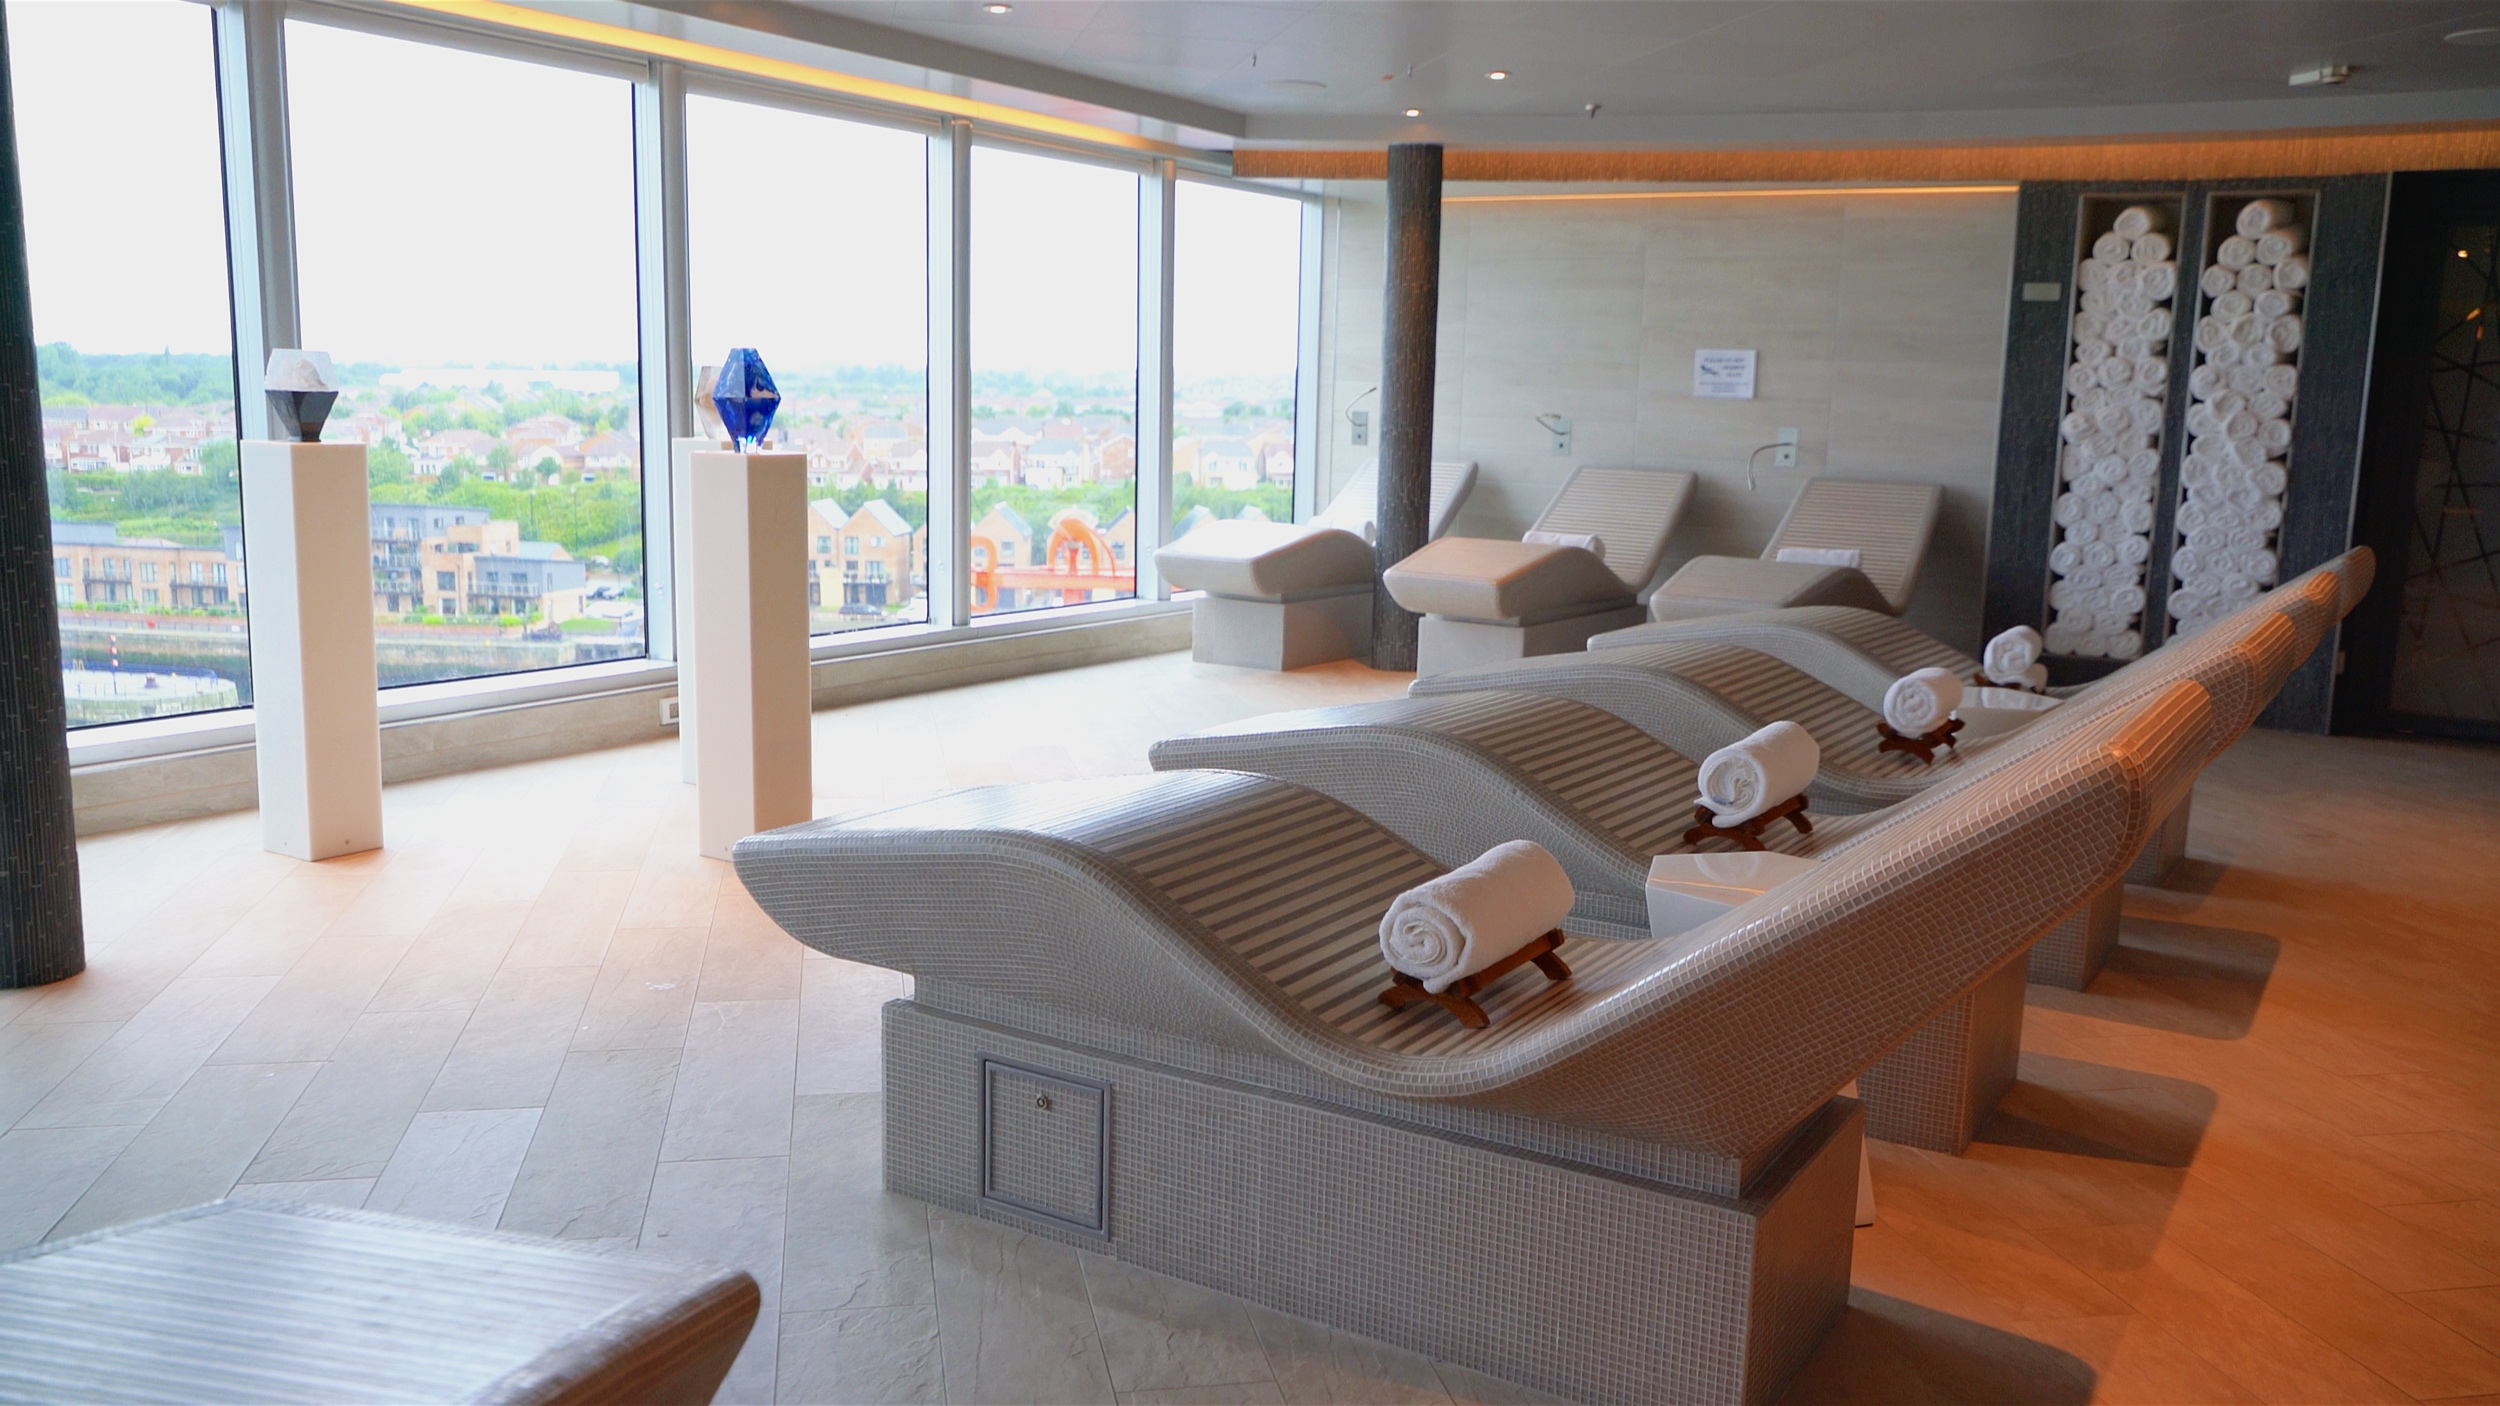 The Greenhouse spa hot stone beds